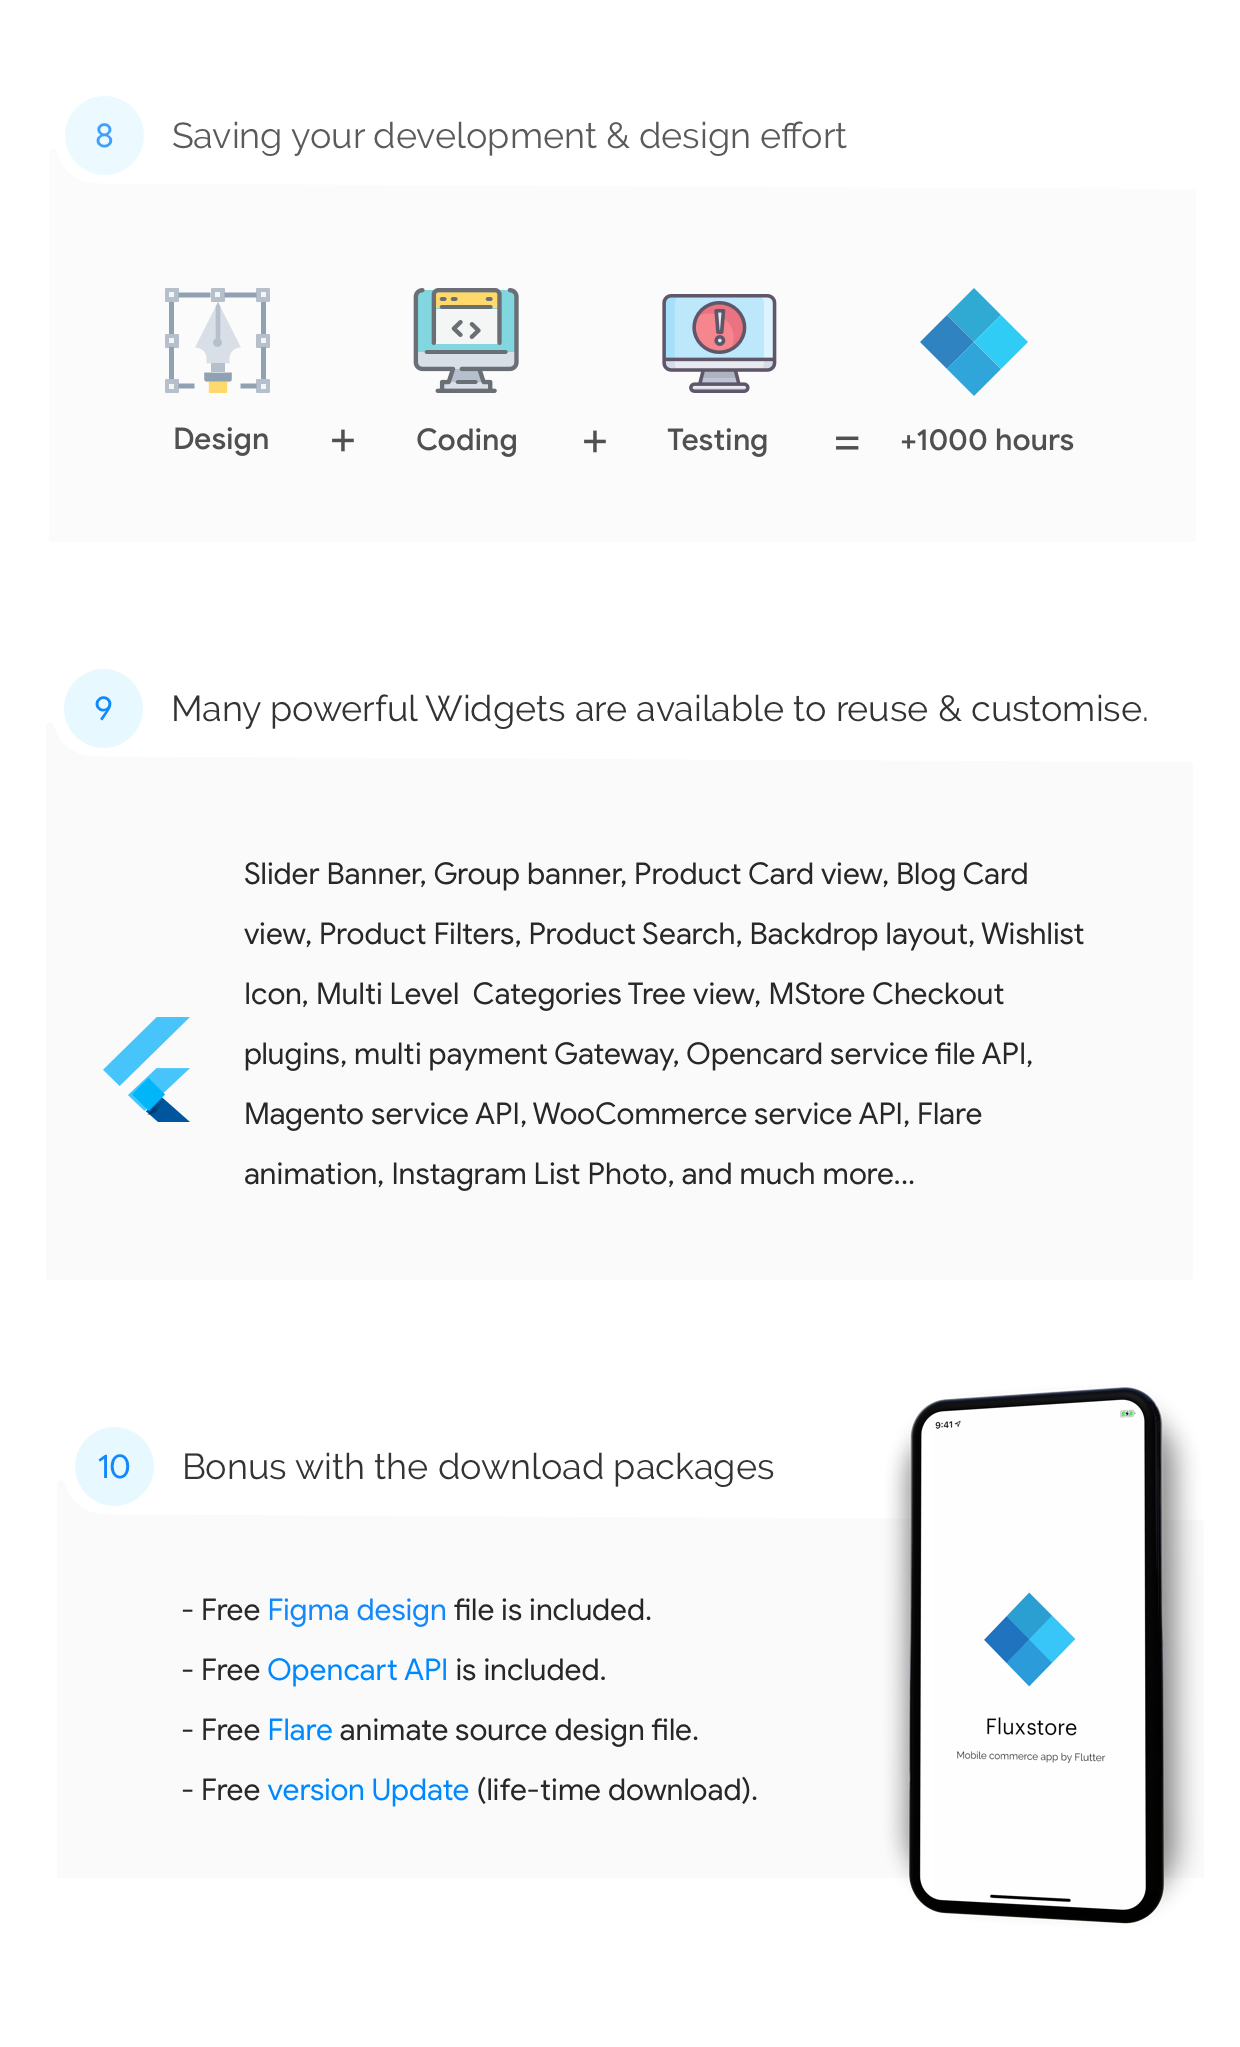 Fluxstore Pro - Flutter E-commerce Full App for Magento, Opencart, and Woocommerce - 8